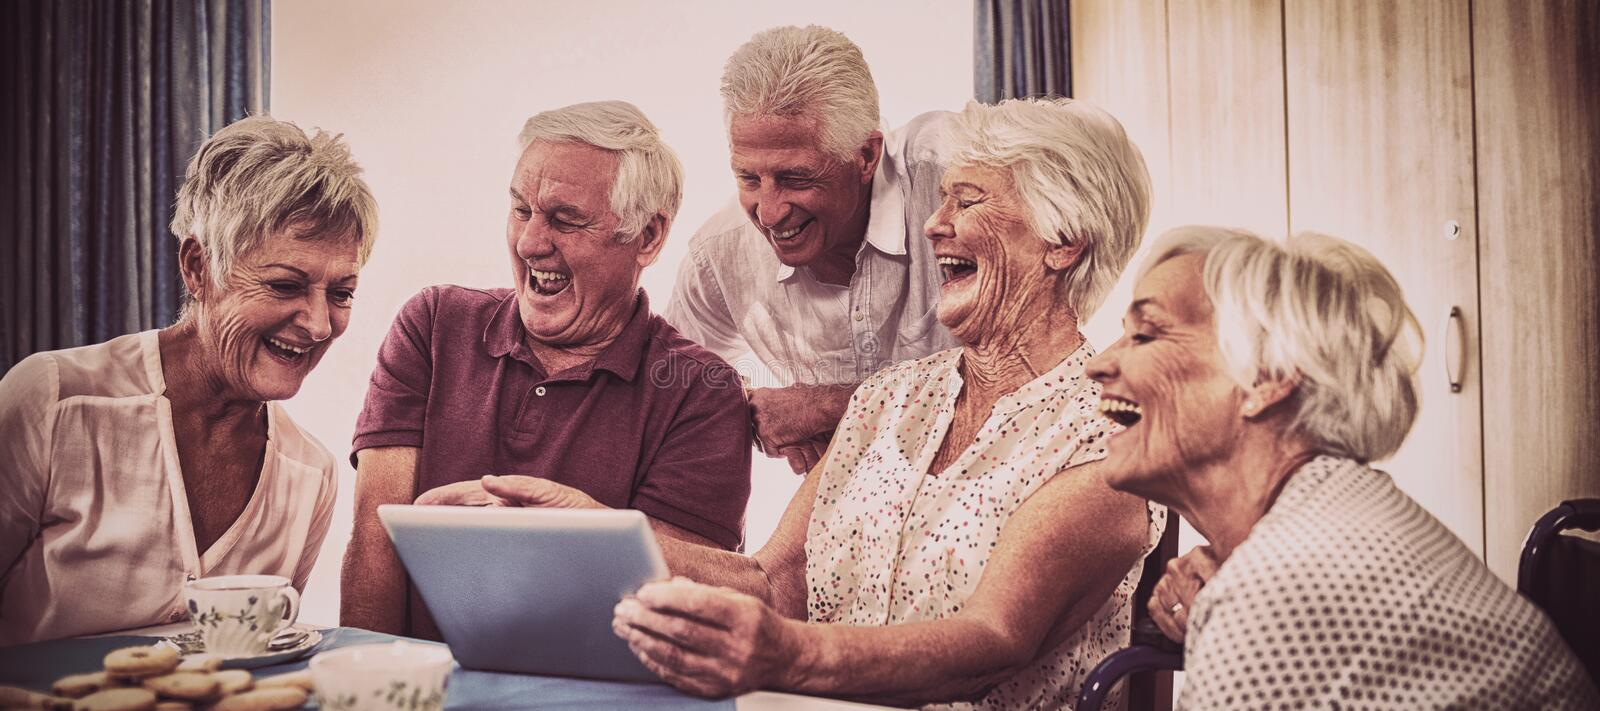 Group of seniors using digital tablet stock photography